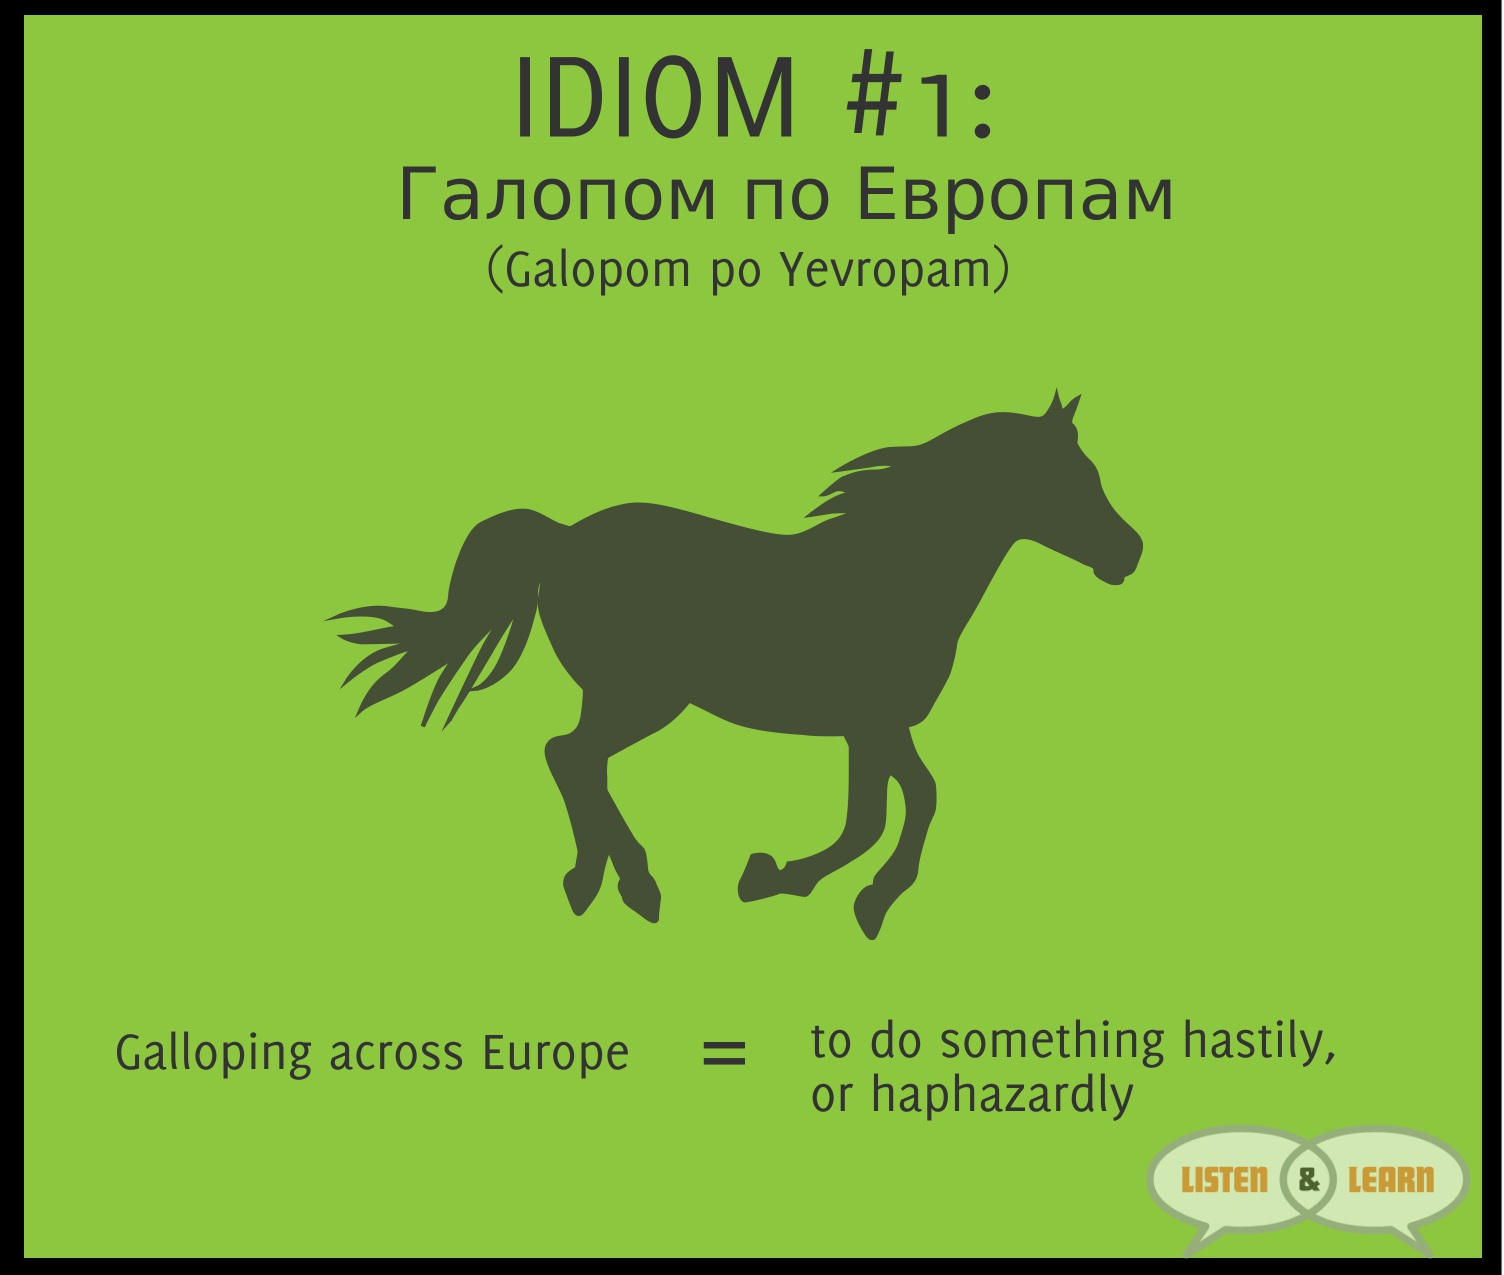 incredible russian idioms listen learn usa this idiom actually means galloping across europe which doesn t seem to make very much sense at all you might think that it has something to do